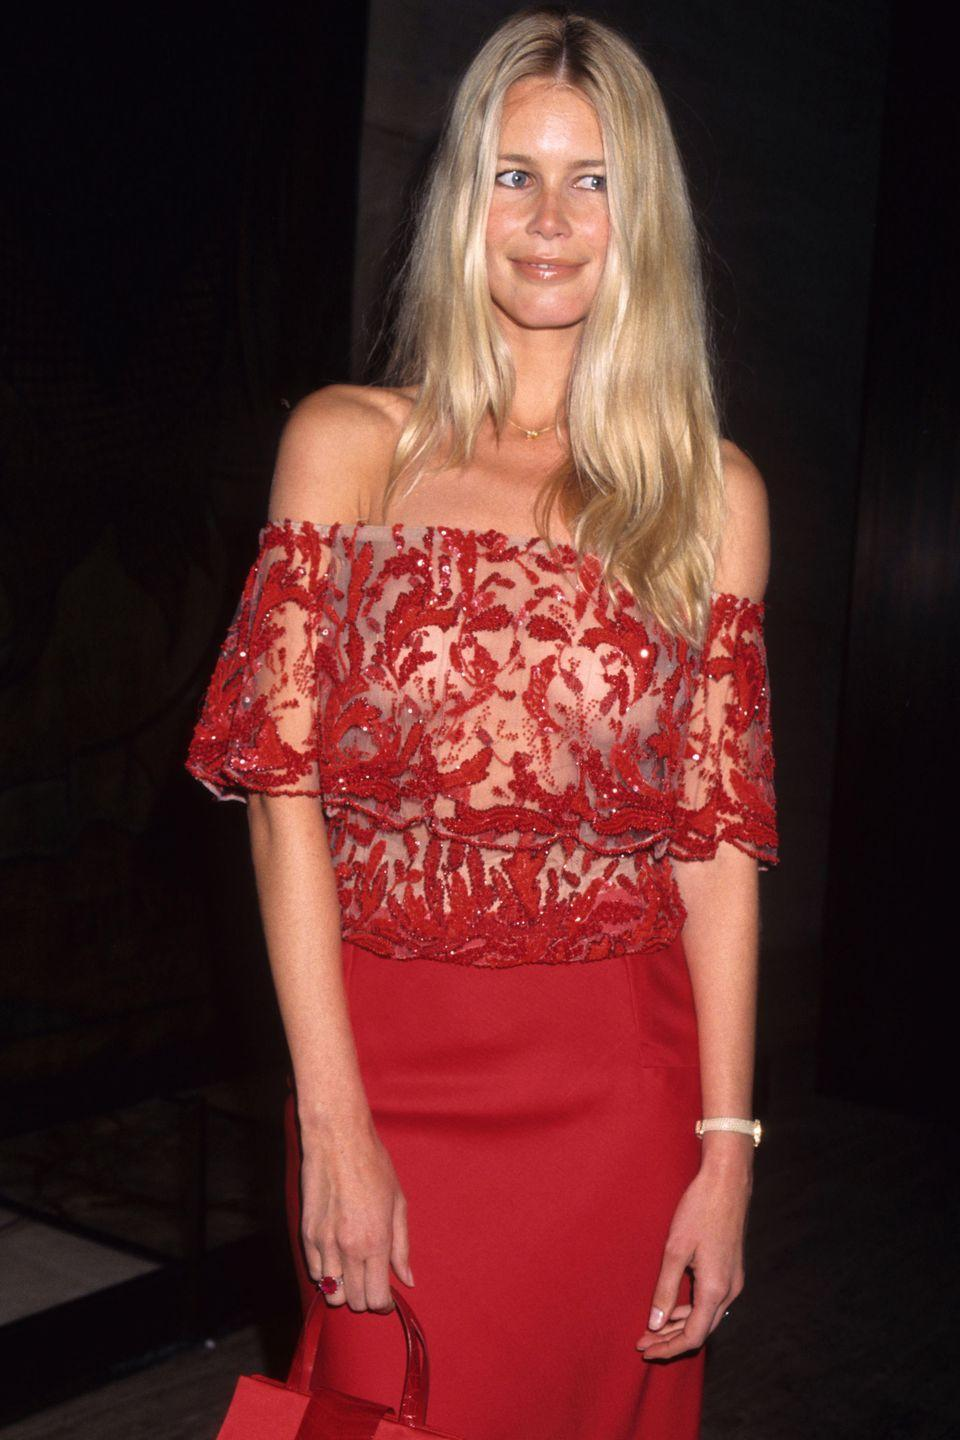 <p>Off to a Valentino party at the Four Seasons Restaurant in New York, on June 14th 2000 wearing an incredibly elegant, Valentino dress in his iconic red, with the most beautiful off the shoulder layered lace sleeves and bodice.</p>